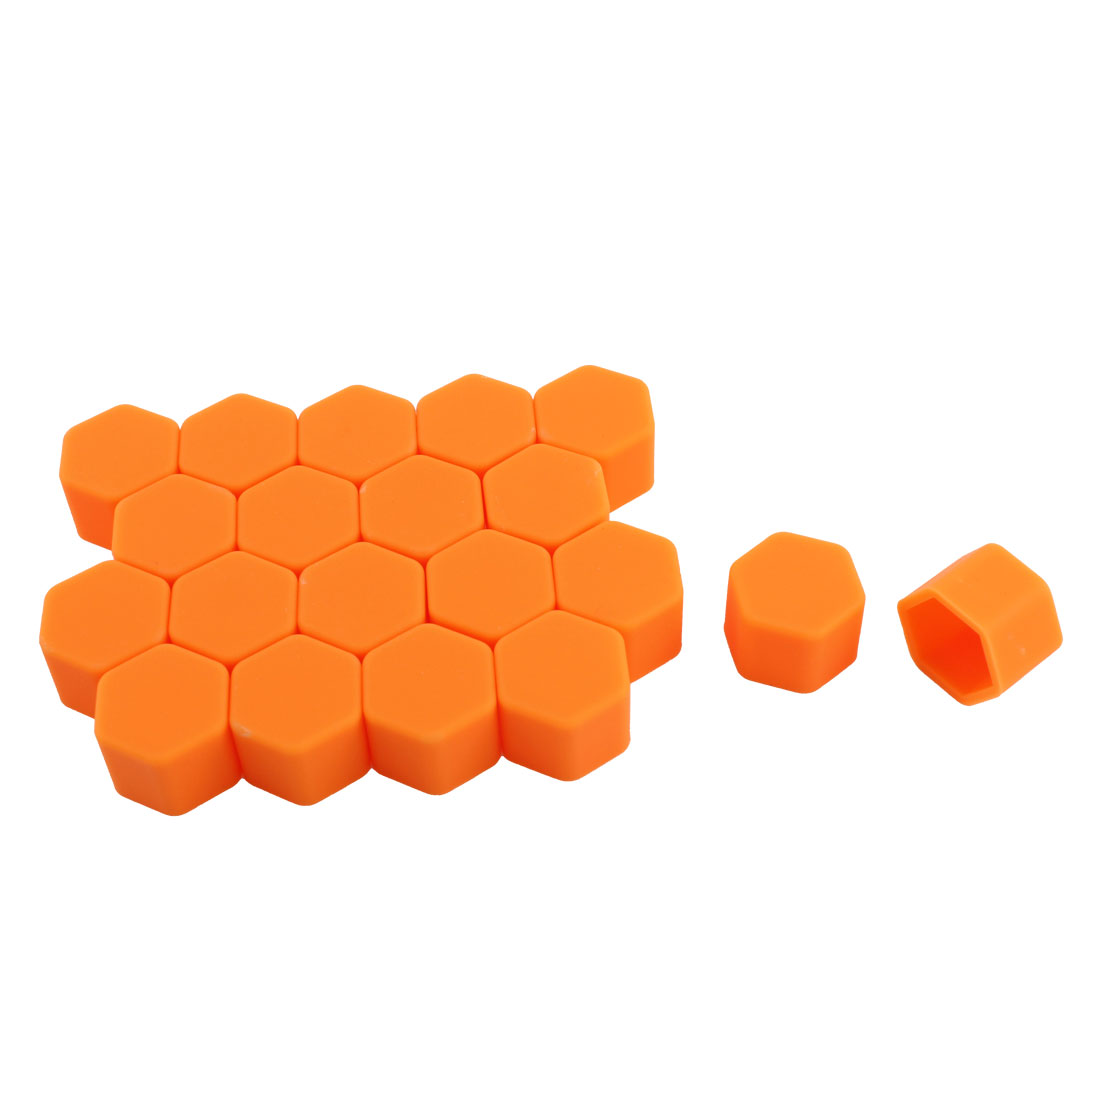 20 Pcs Orange Silicone Car Wheel Lugs Nuts Bolts Covers Hub Tyres Screw Dust Caps